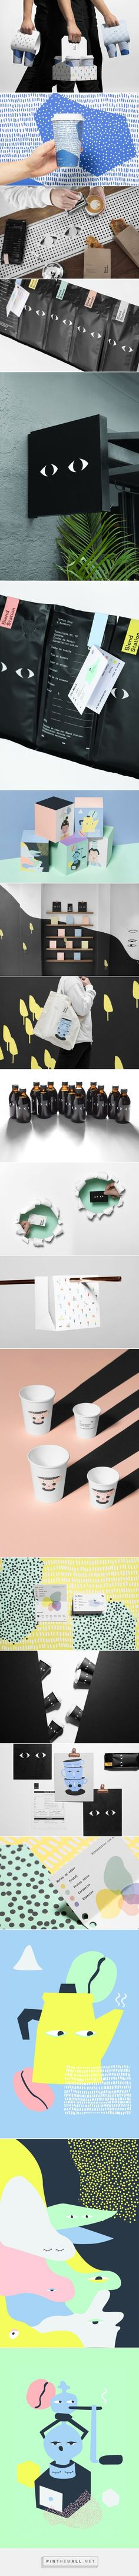 Grab a Coffee and Get Inspired With Blend Station | design by  Futura